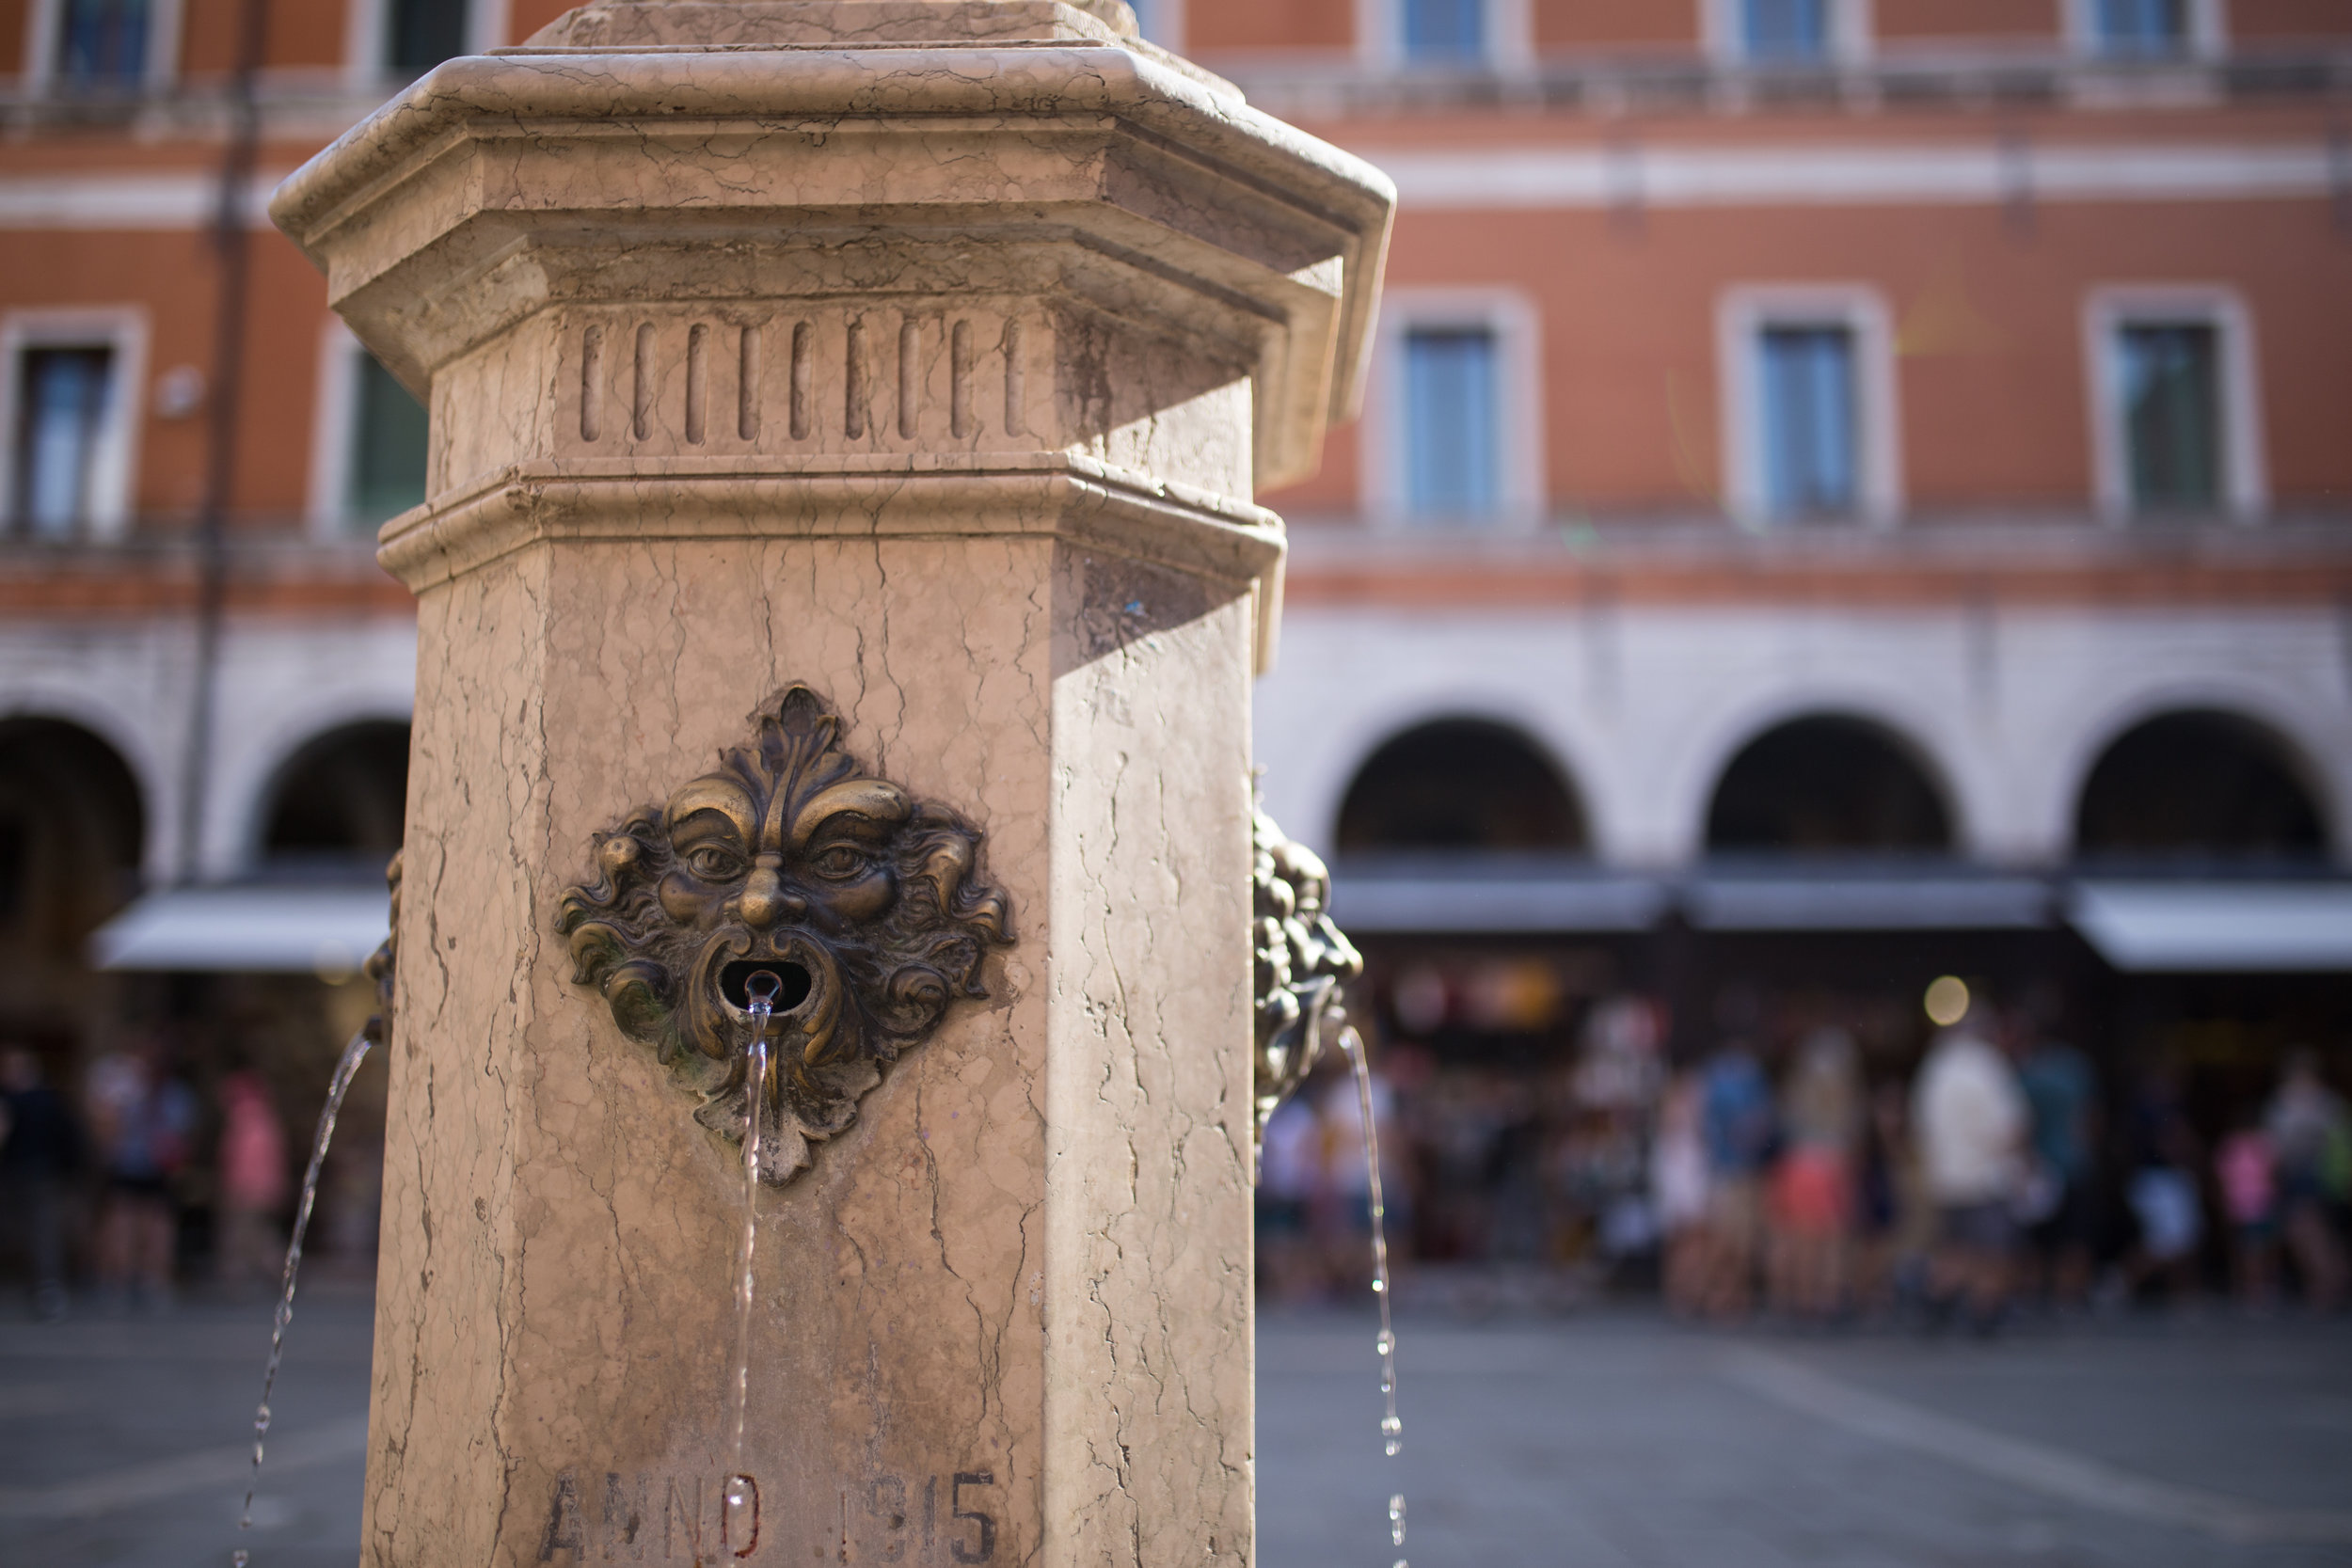 A Venetian fountain, from which clean, drinkable water flows at all times